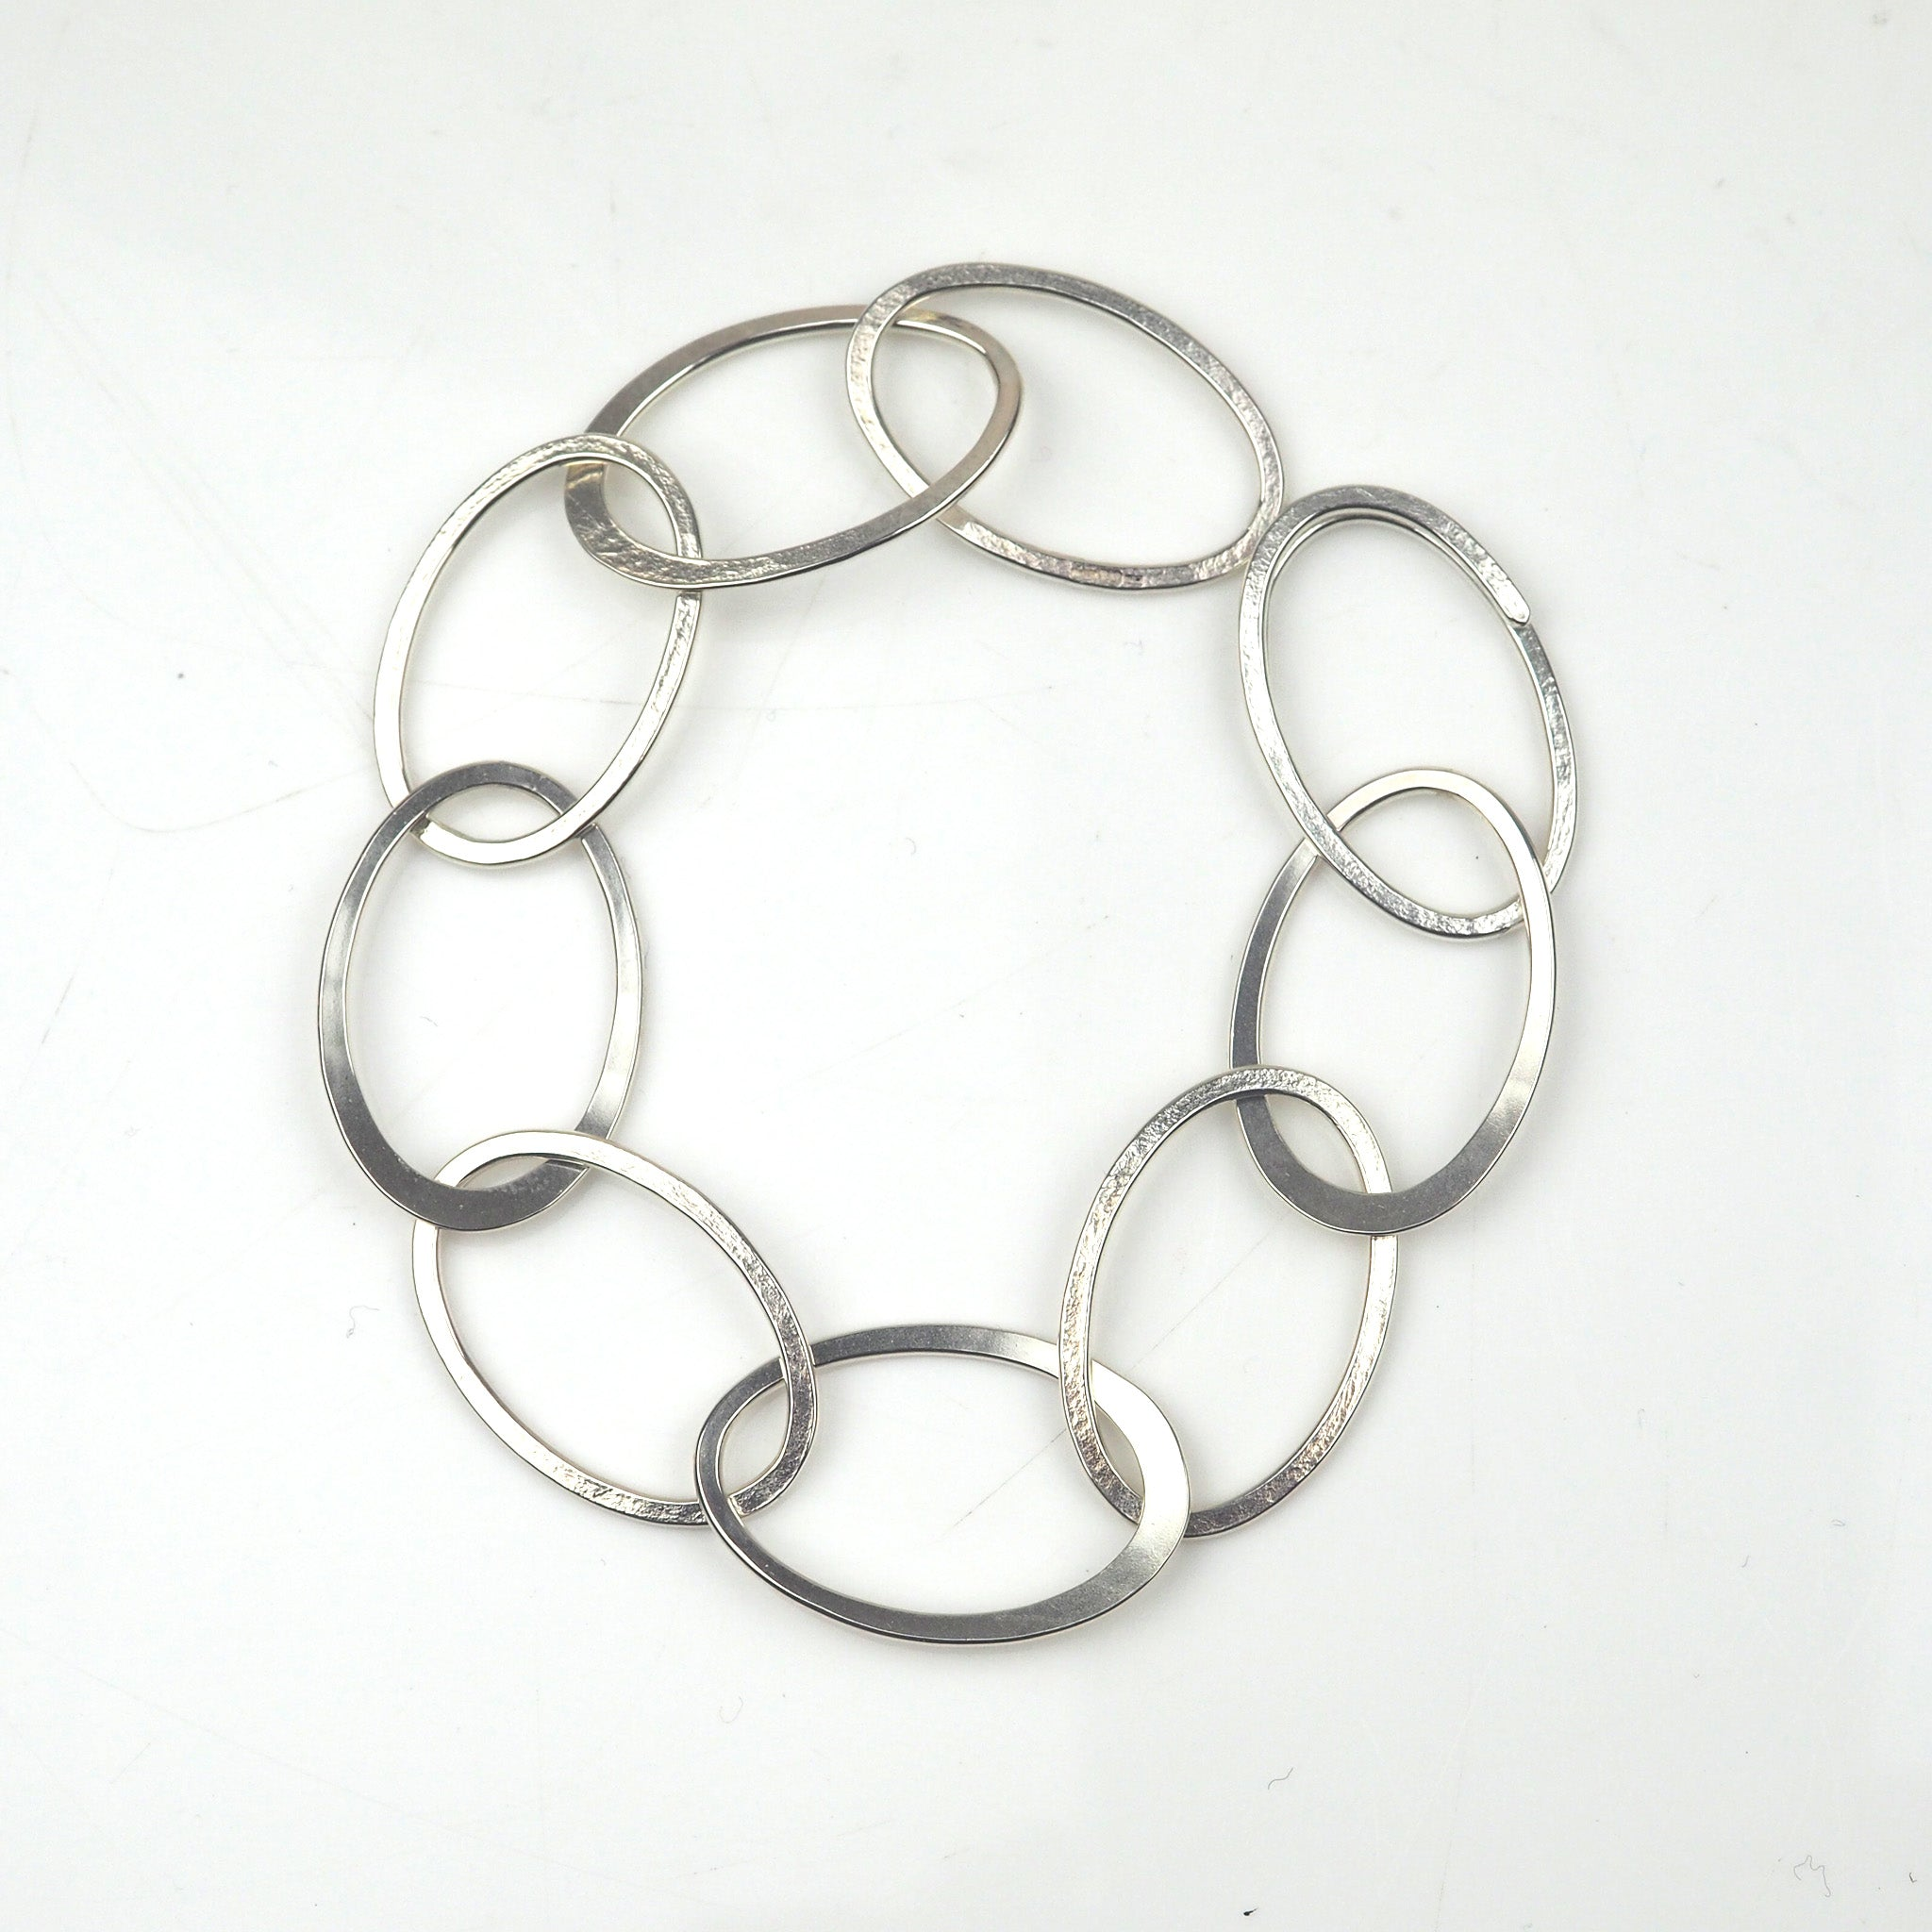 Latham and Neve – All Silver Bracelet